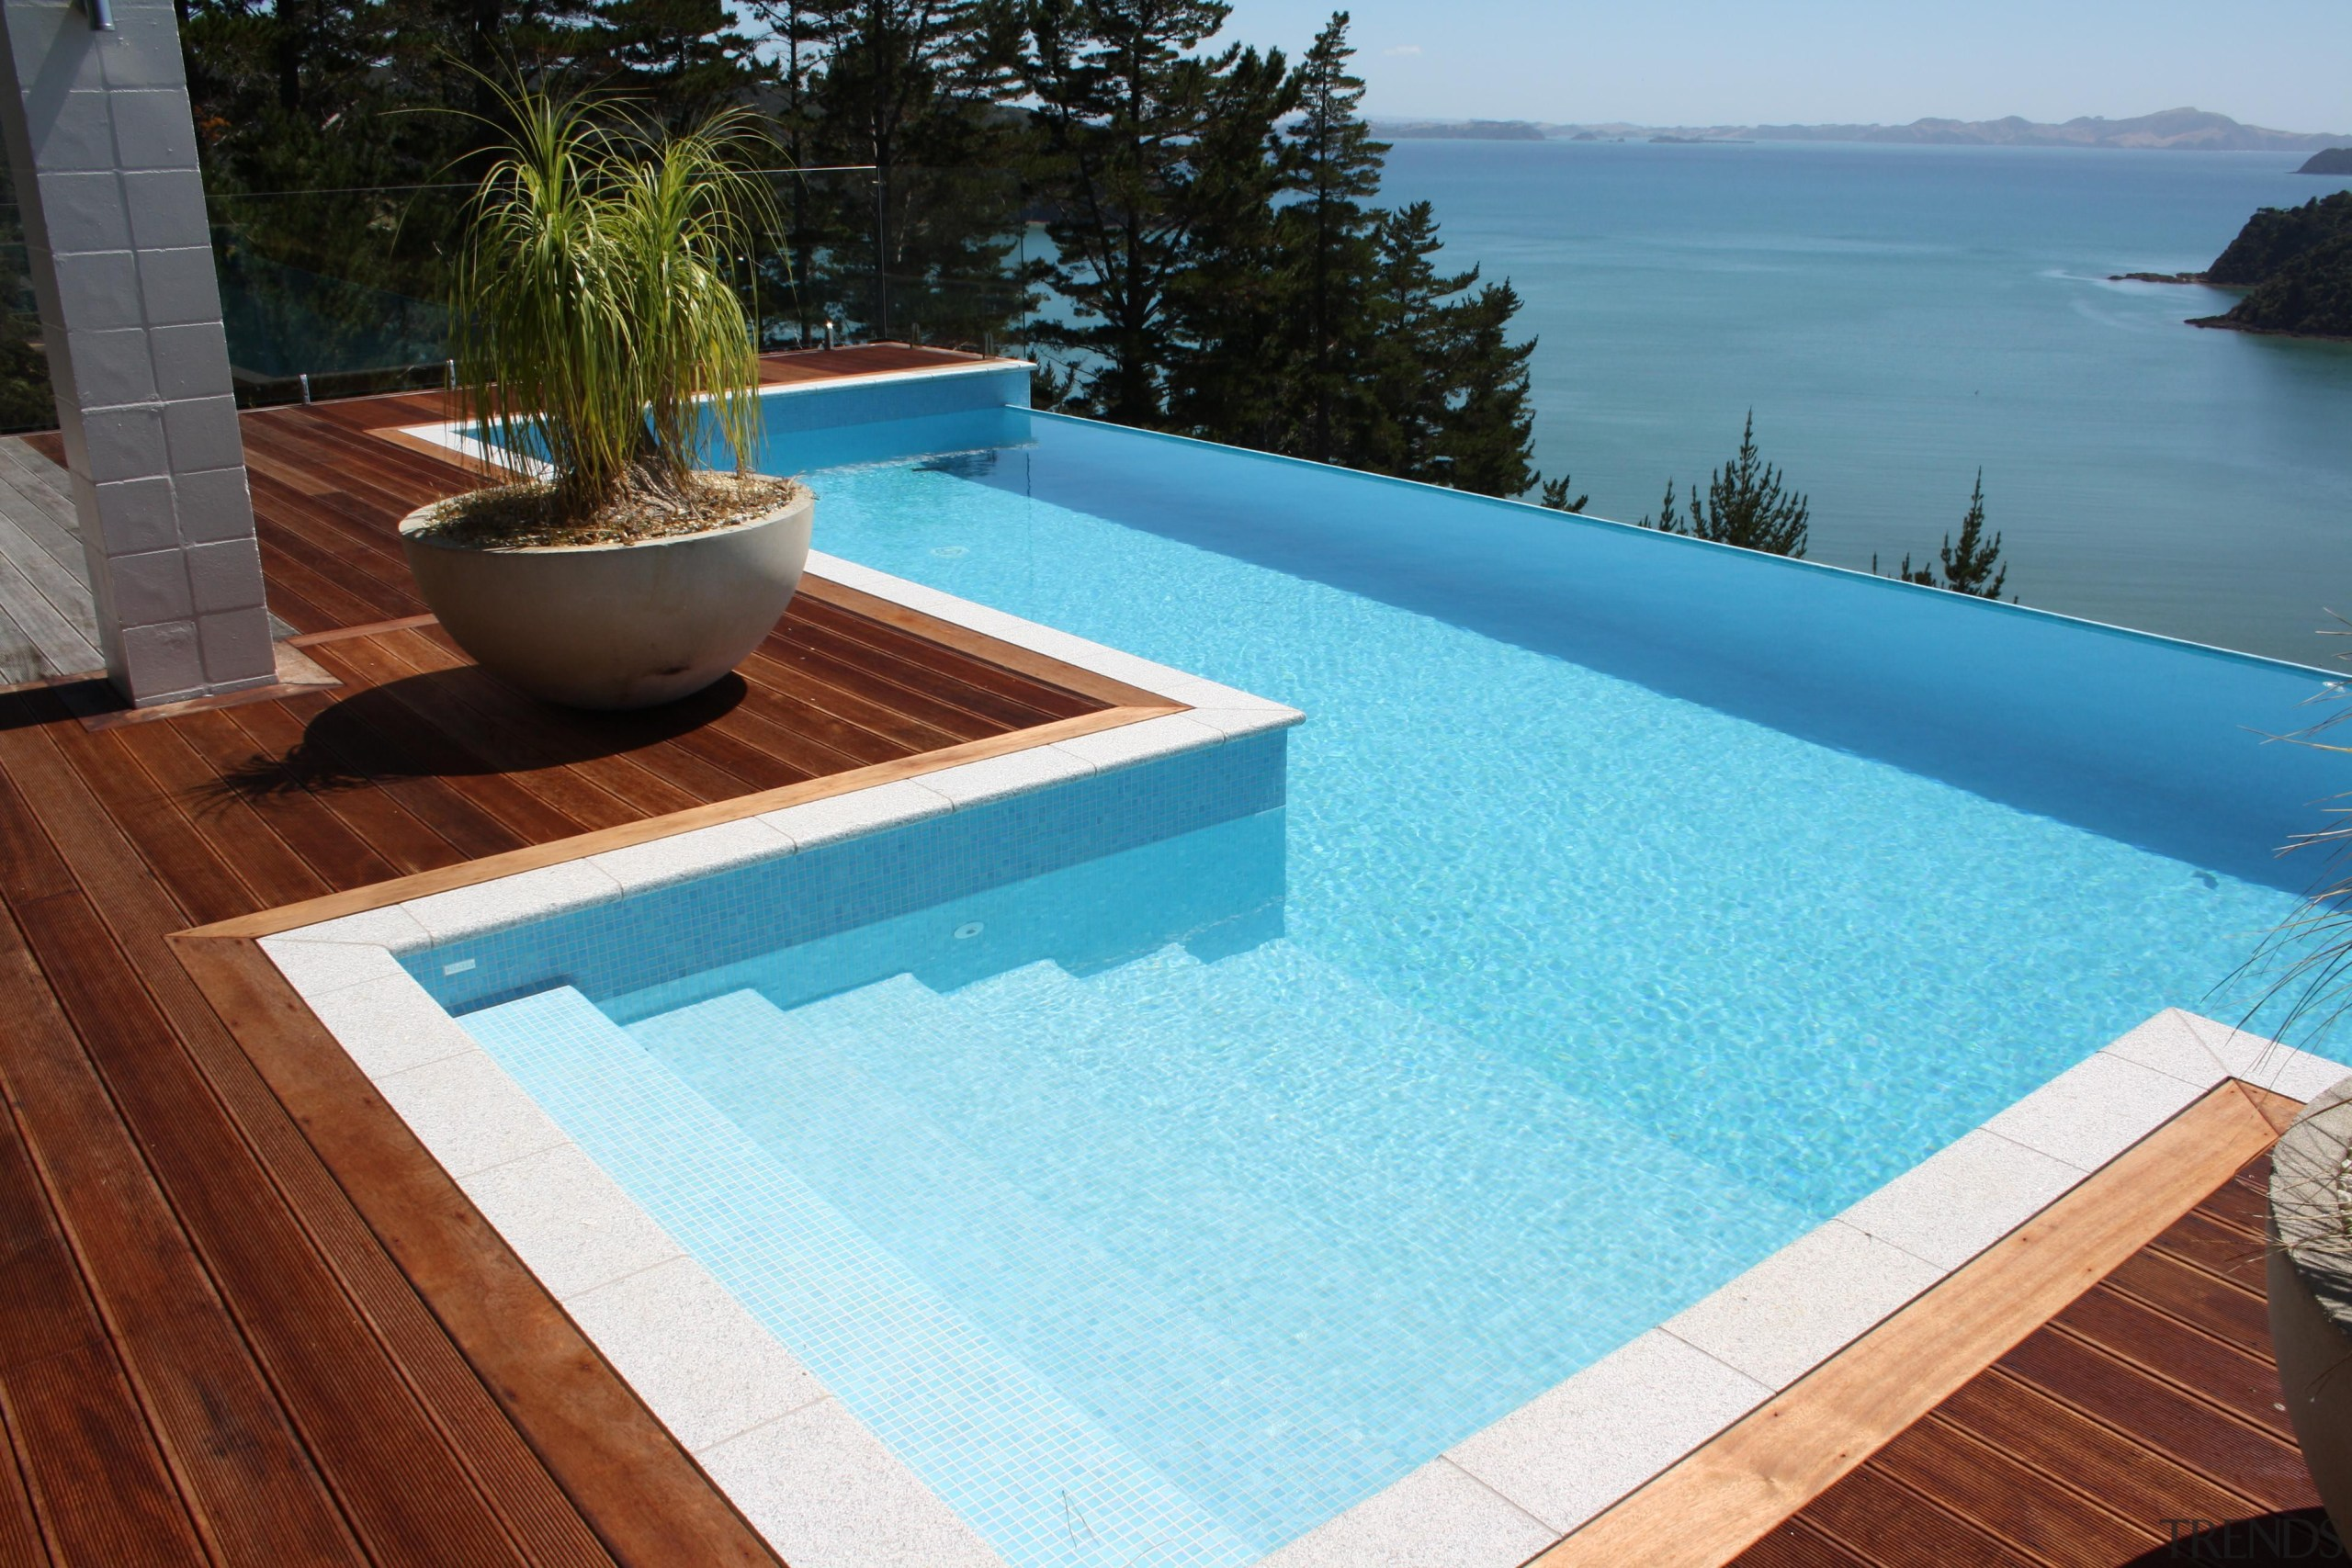 Bisazza Paroa Bay swimming pool tiles - Bisazza composite material, floor, leisure, outdoor furniture, property, roof, sunlounger, swimming pool, wood, teal